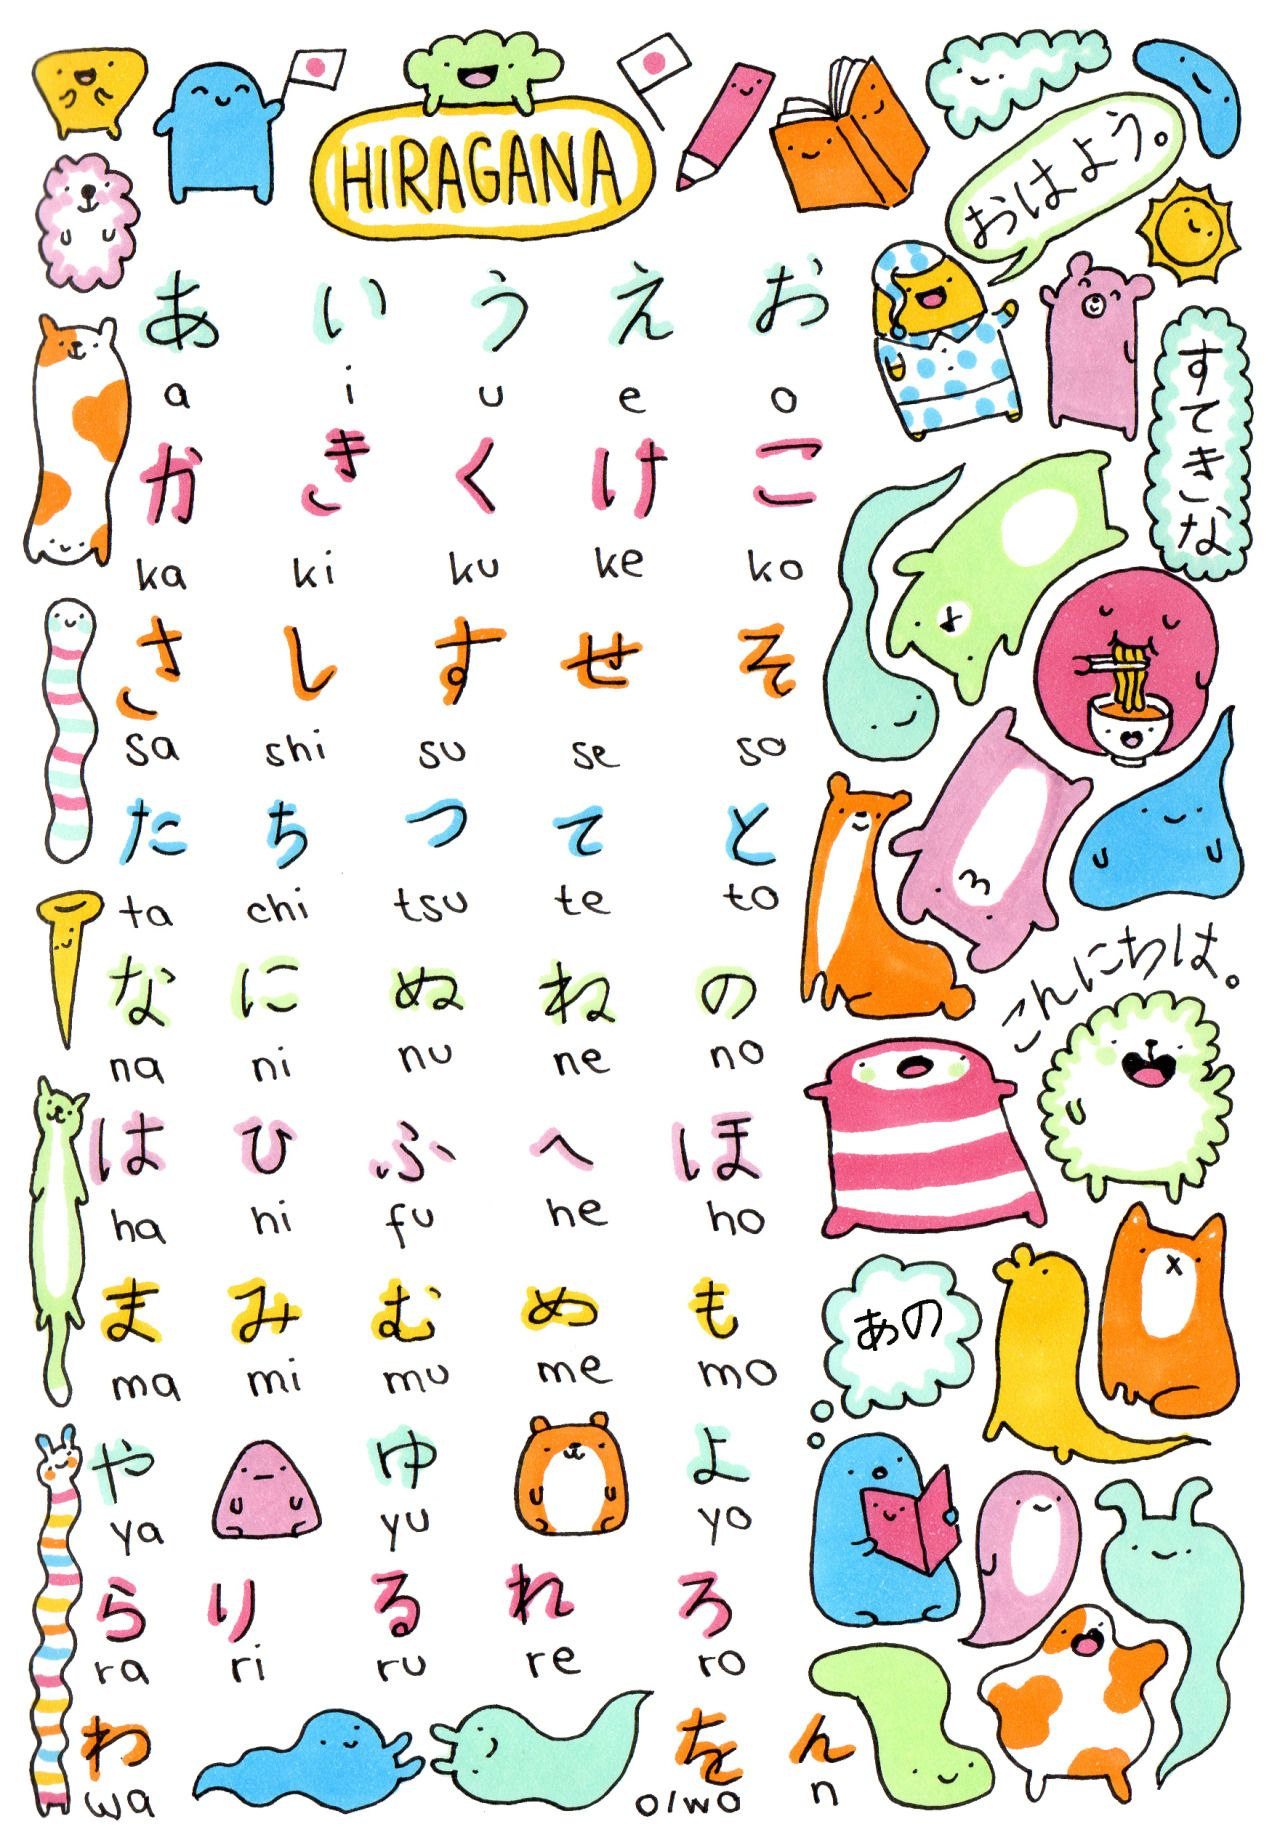 This Is Cute Hiragana Chart For Reference For You Guys Y